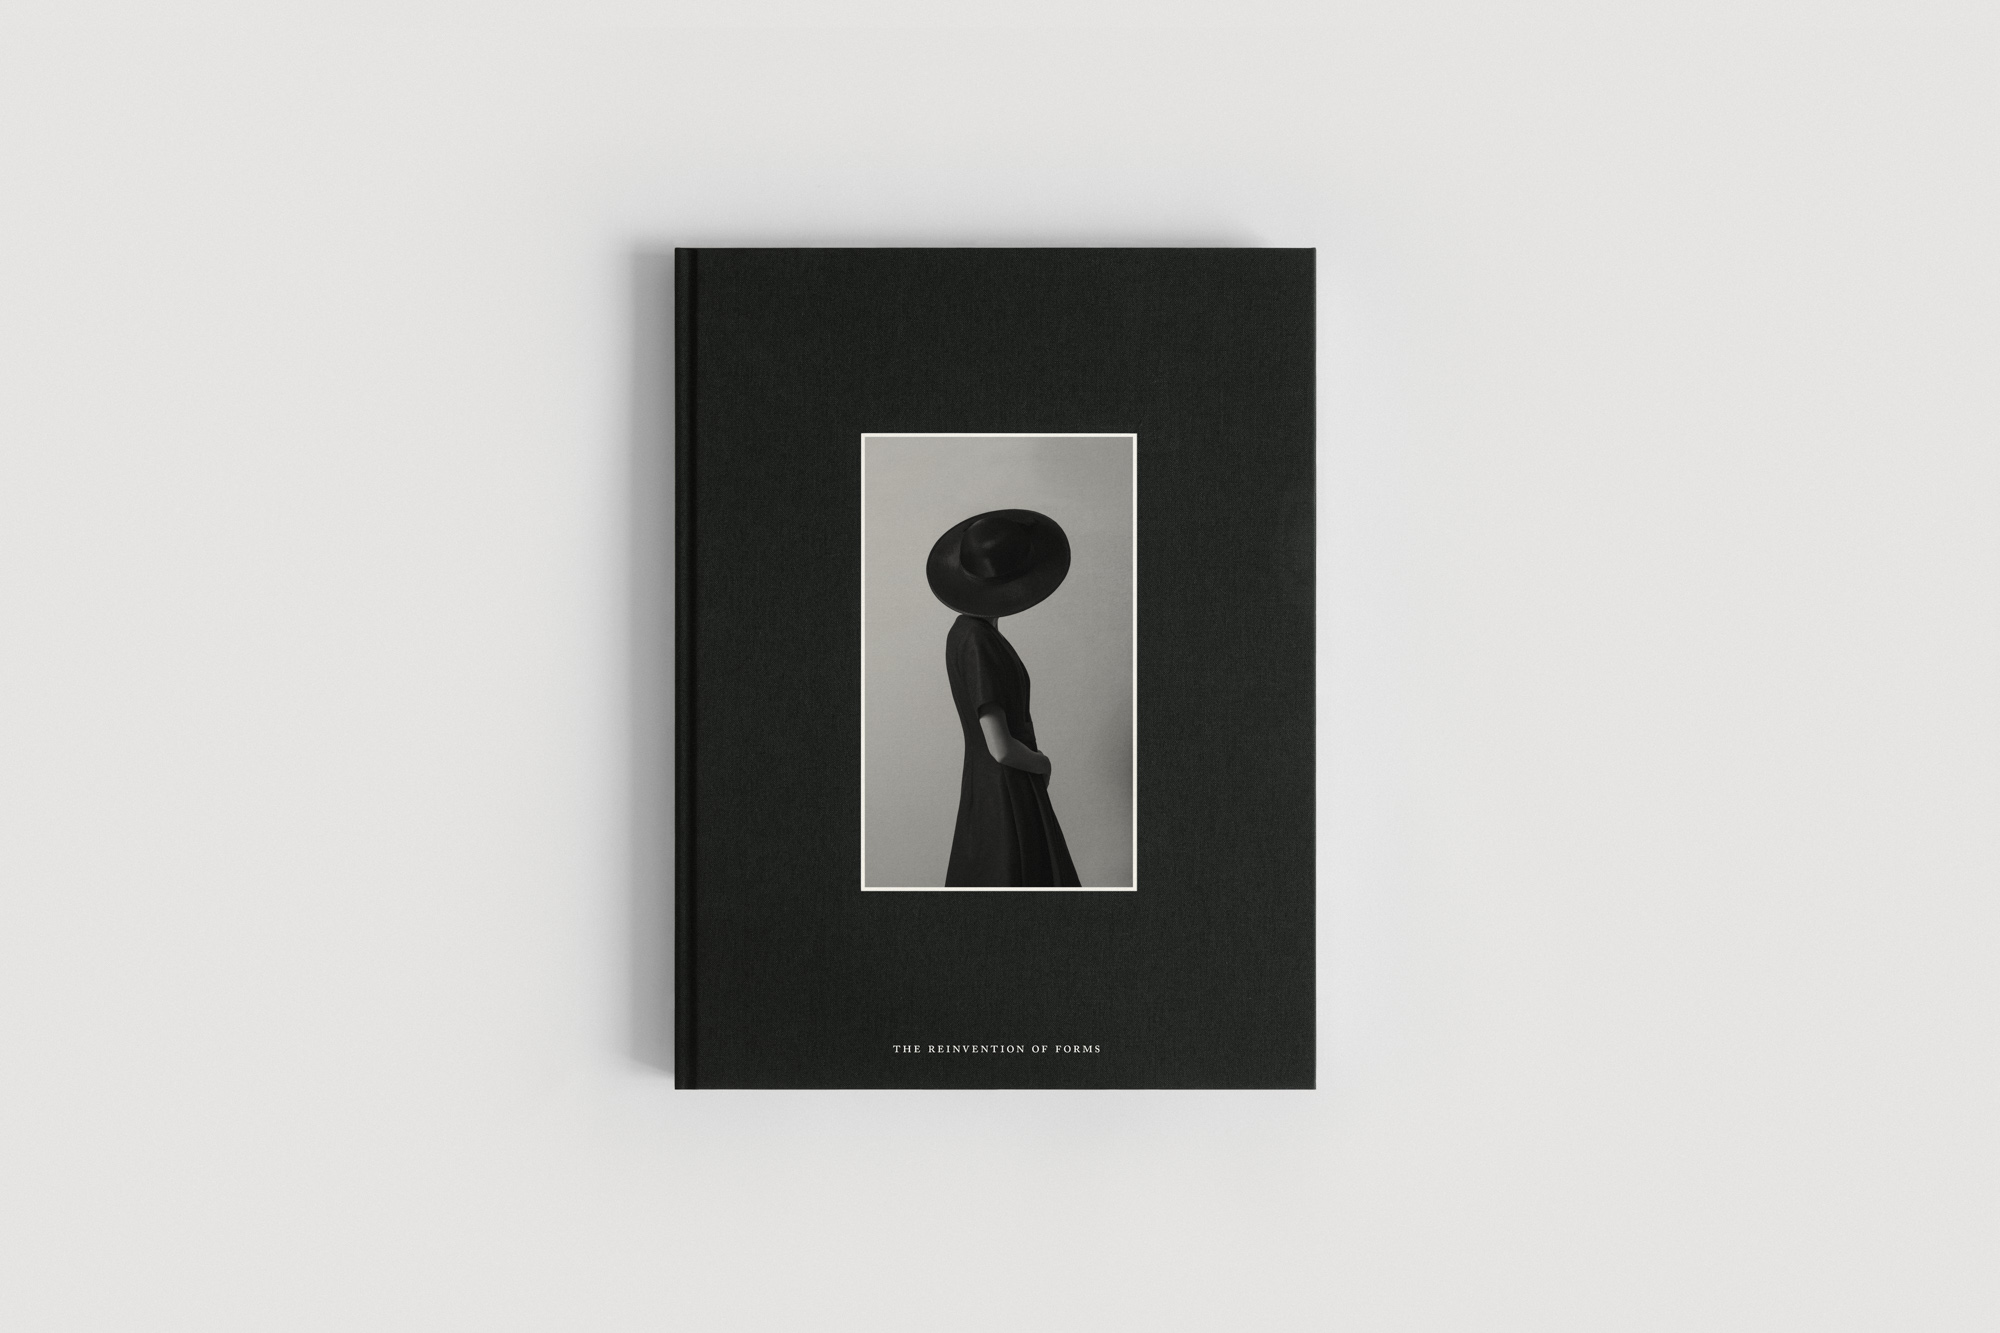 Jonas-Bjerre-Poulsen-The-Reinvention-of-Forms-Book-Packshots-Web-03